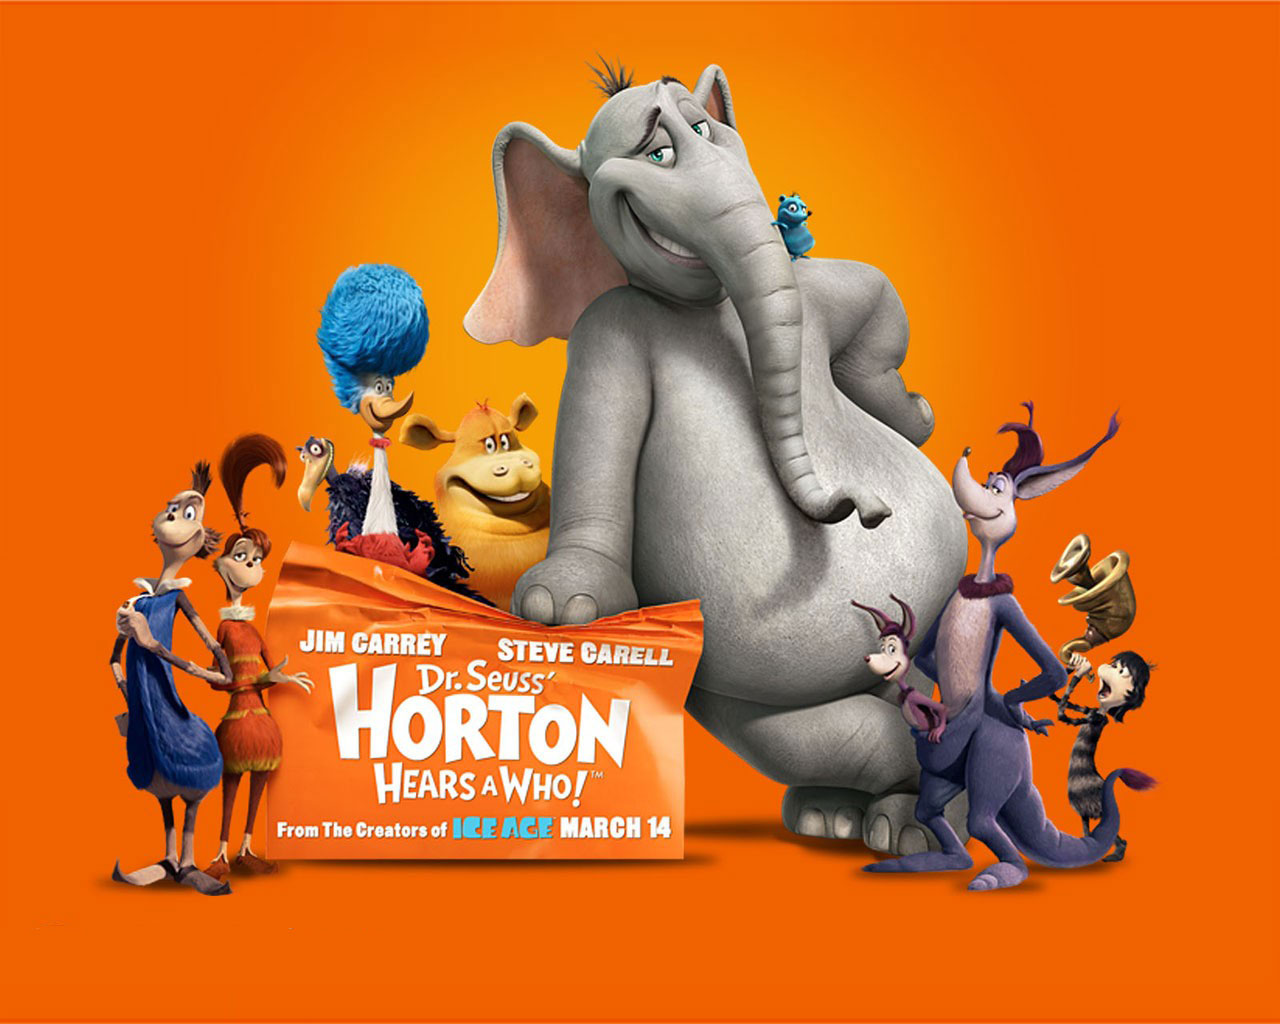 Cine Crack Horton Hears A Who. Chemical Pneumonitis Signs. 5 Standard Signs Of Stroke. Heatwave Signs. Idiopathic Pulmonary Fibrosis Signs. Friday Night Football Signs. Kidney Damage Signs. Inflamed Signs. Introvert Signs